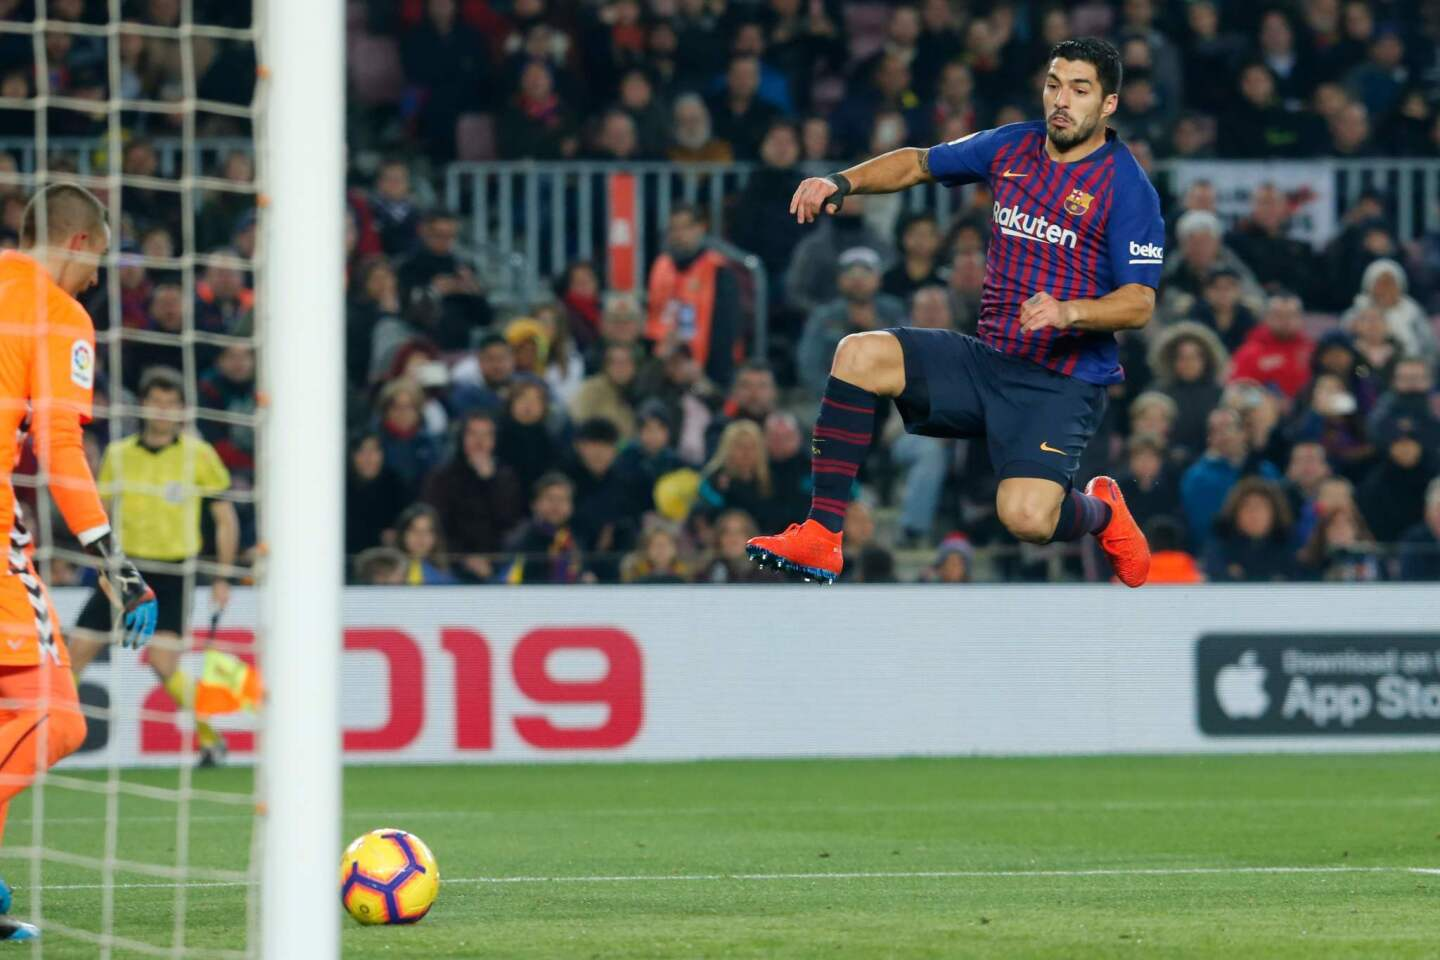 Barcelona's Uruguayan forward Luis Suarez (R) jumps for the ball in front of Real Valladolid's Spanish goalkeeper Jordi Masip during the Spanish League football match between Barcelona and Real Valladolid at the Camp Nou stadium in Barcelona on February 16, 2019. (Photo by Pau Barrena / AFP)PAU BARRENA/AFP/Getty Images ** OUTS - ELSENT, FPG, CM - OUTS * NM, PH, VA if sourced by CT, LA or MoD **